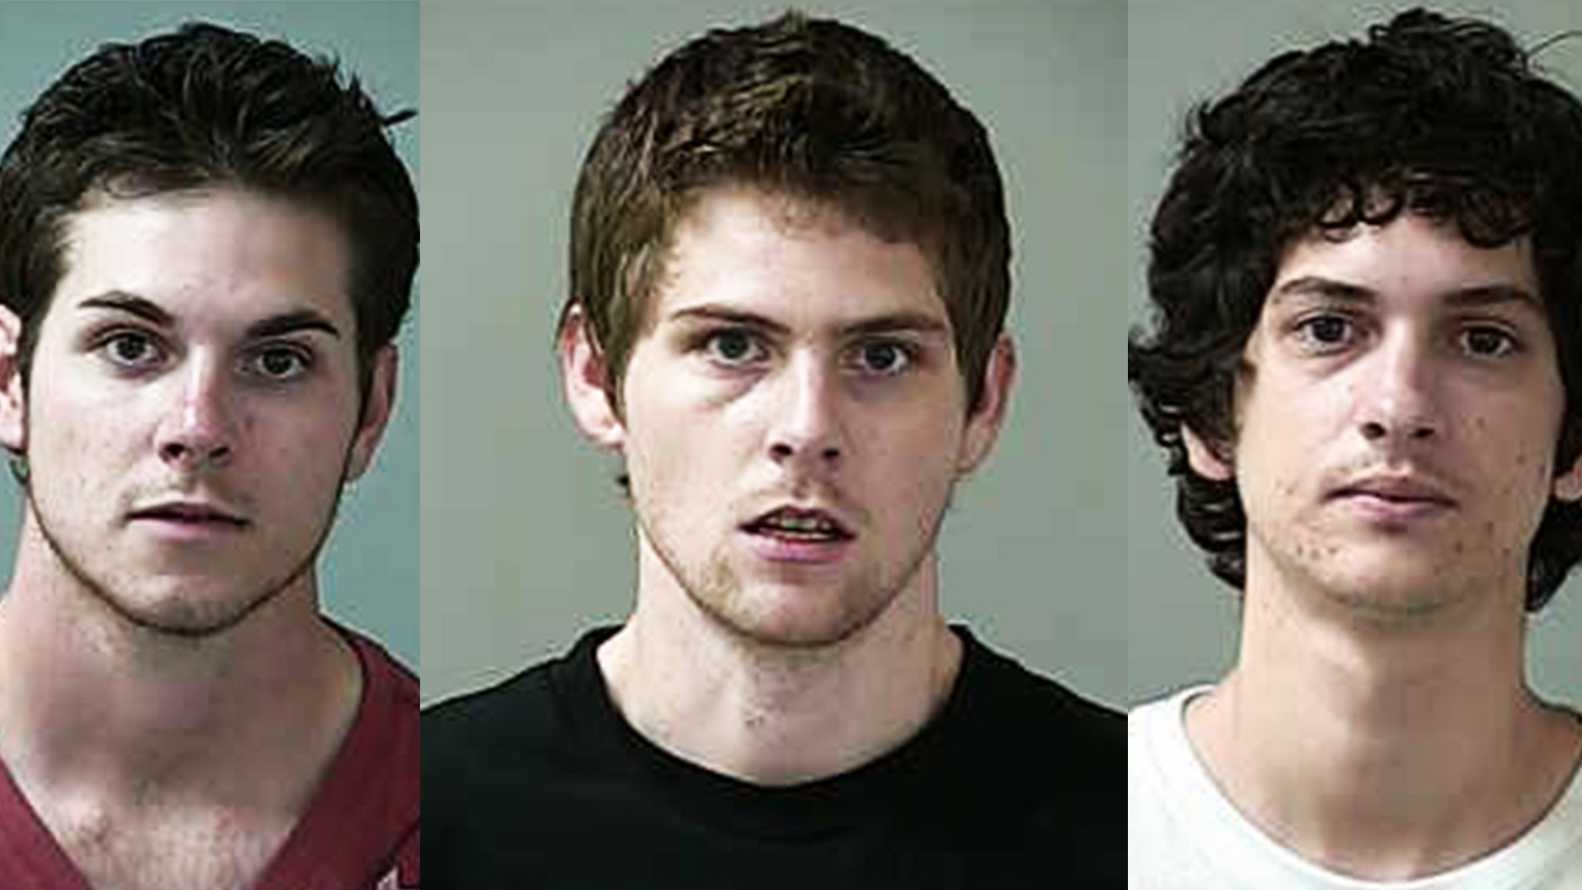 Jason Methot, left, Nicolas Cooper, center, and Anthony Rangel were arrested on Highway 101 near Highway 85.